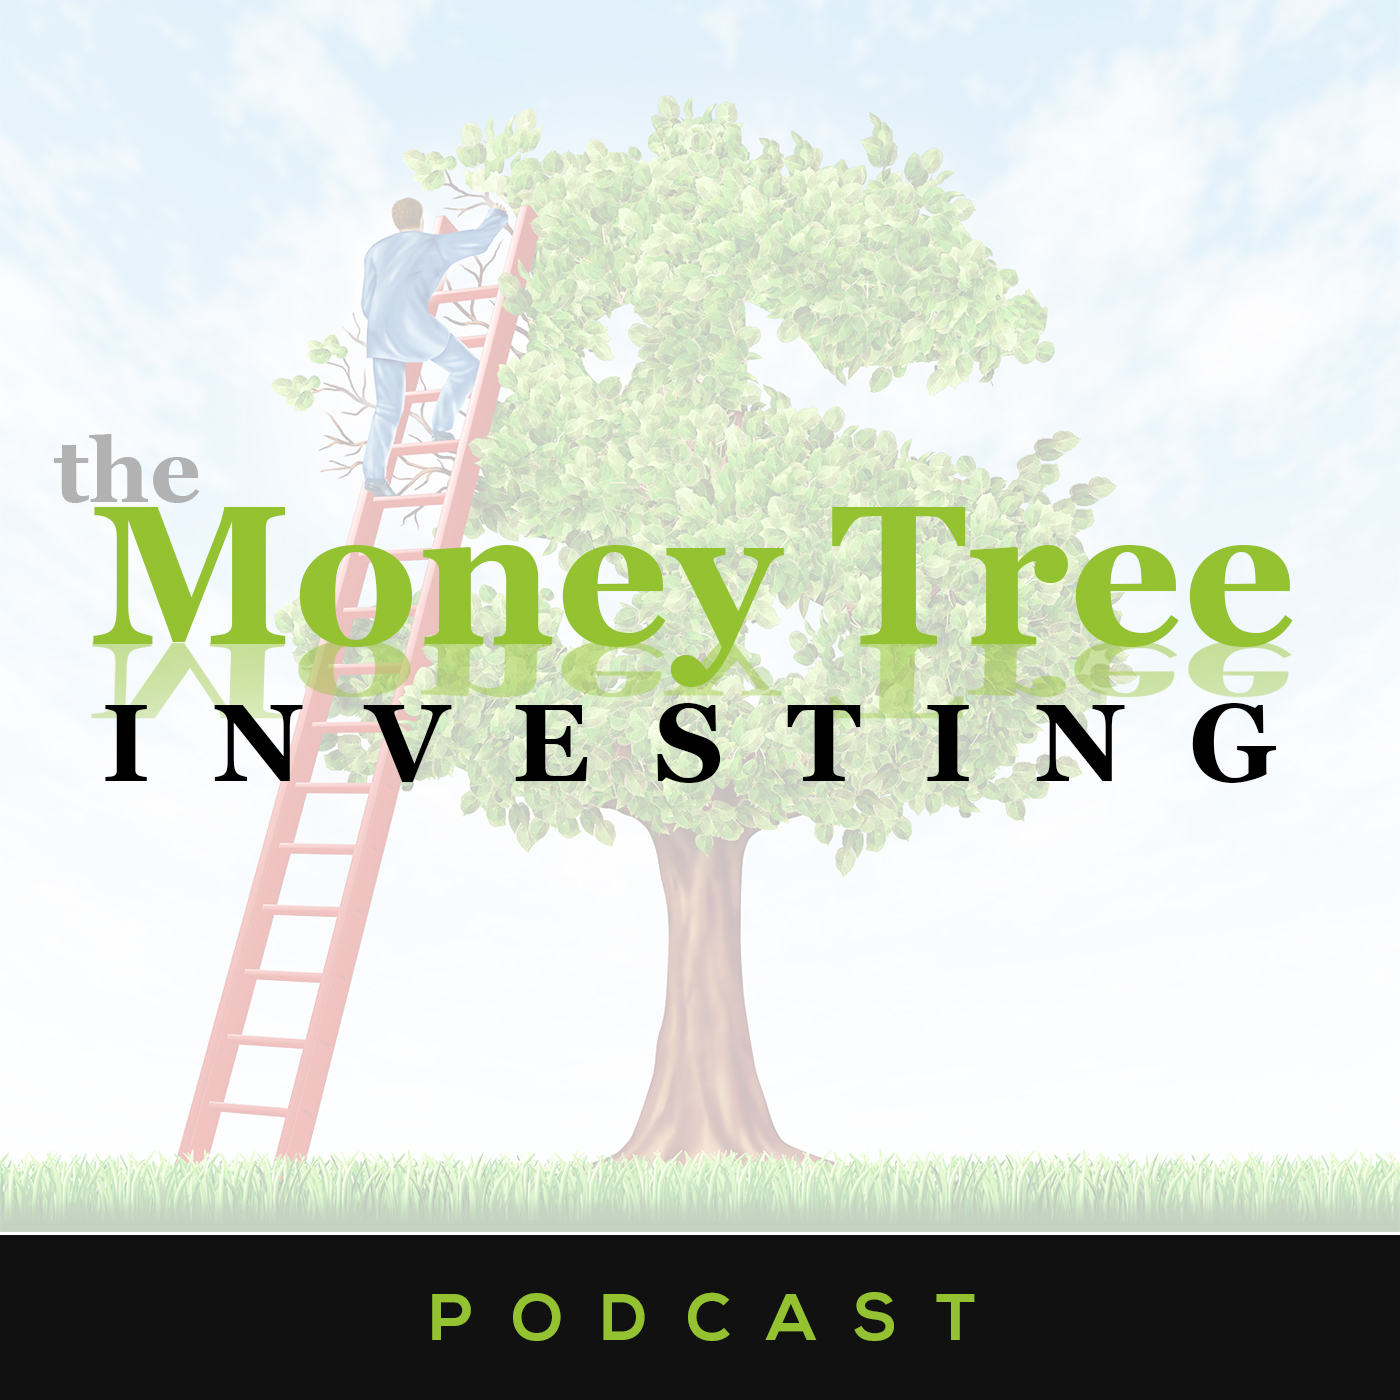 Money Tree Investing Podcast Logo